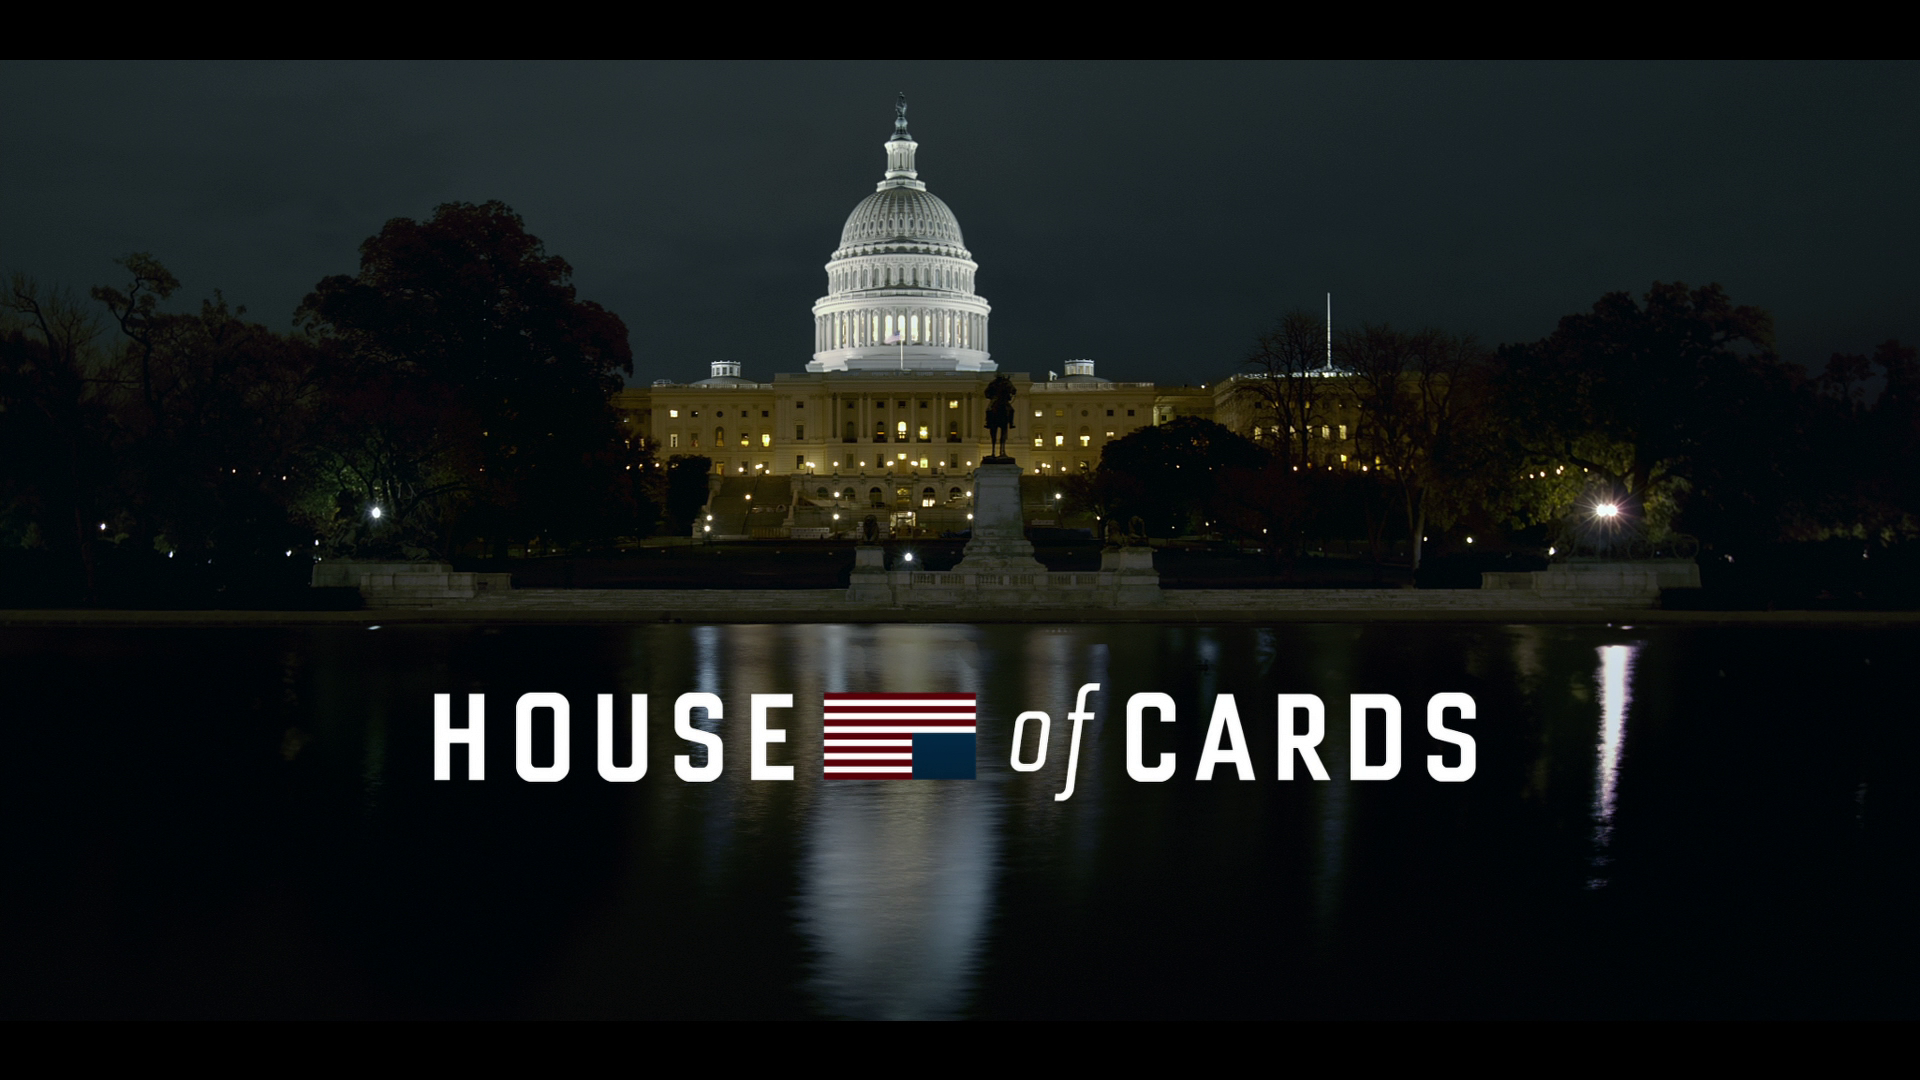 House of cards full hd wallpaper and background image for House of wallpaper